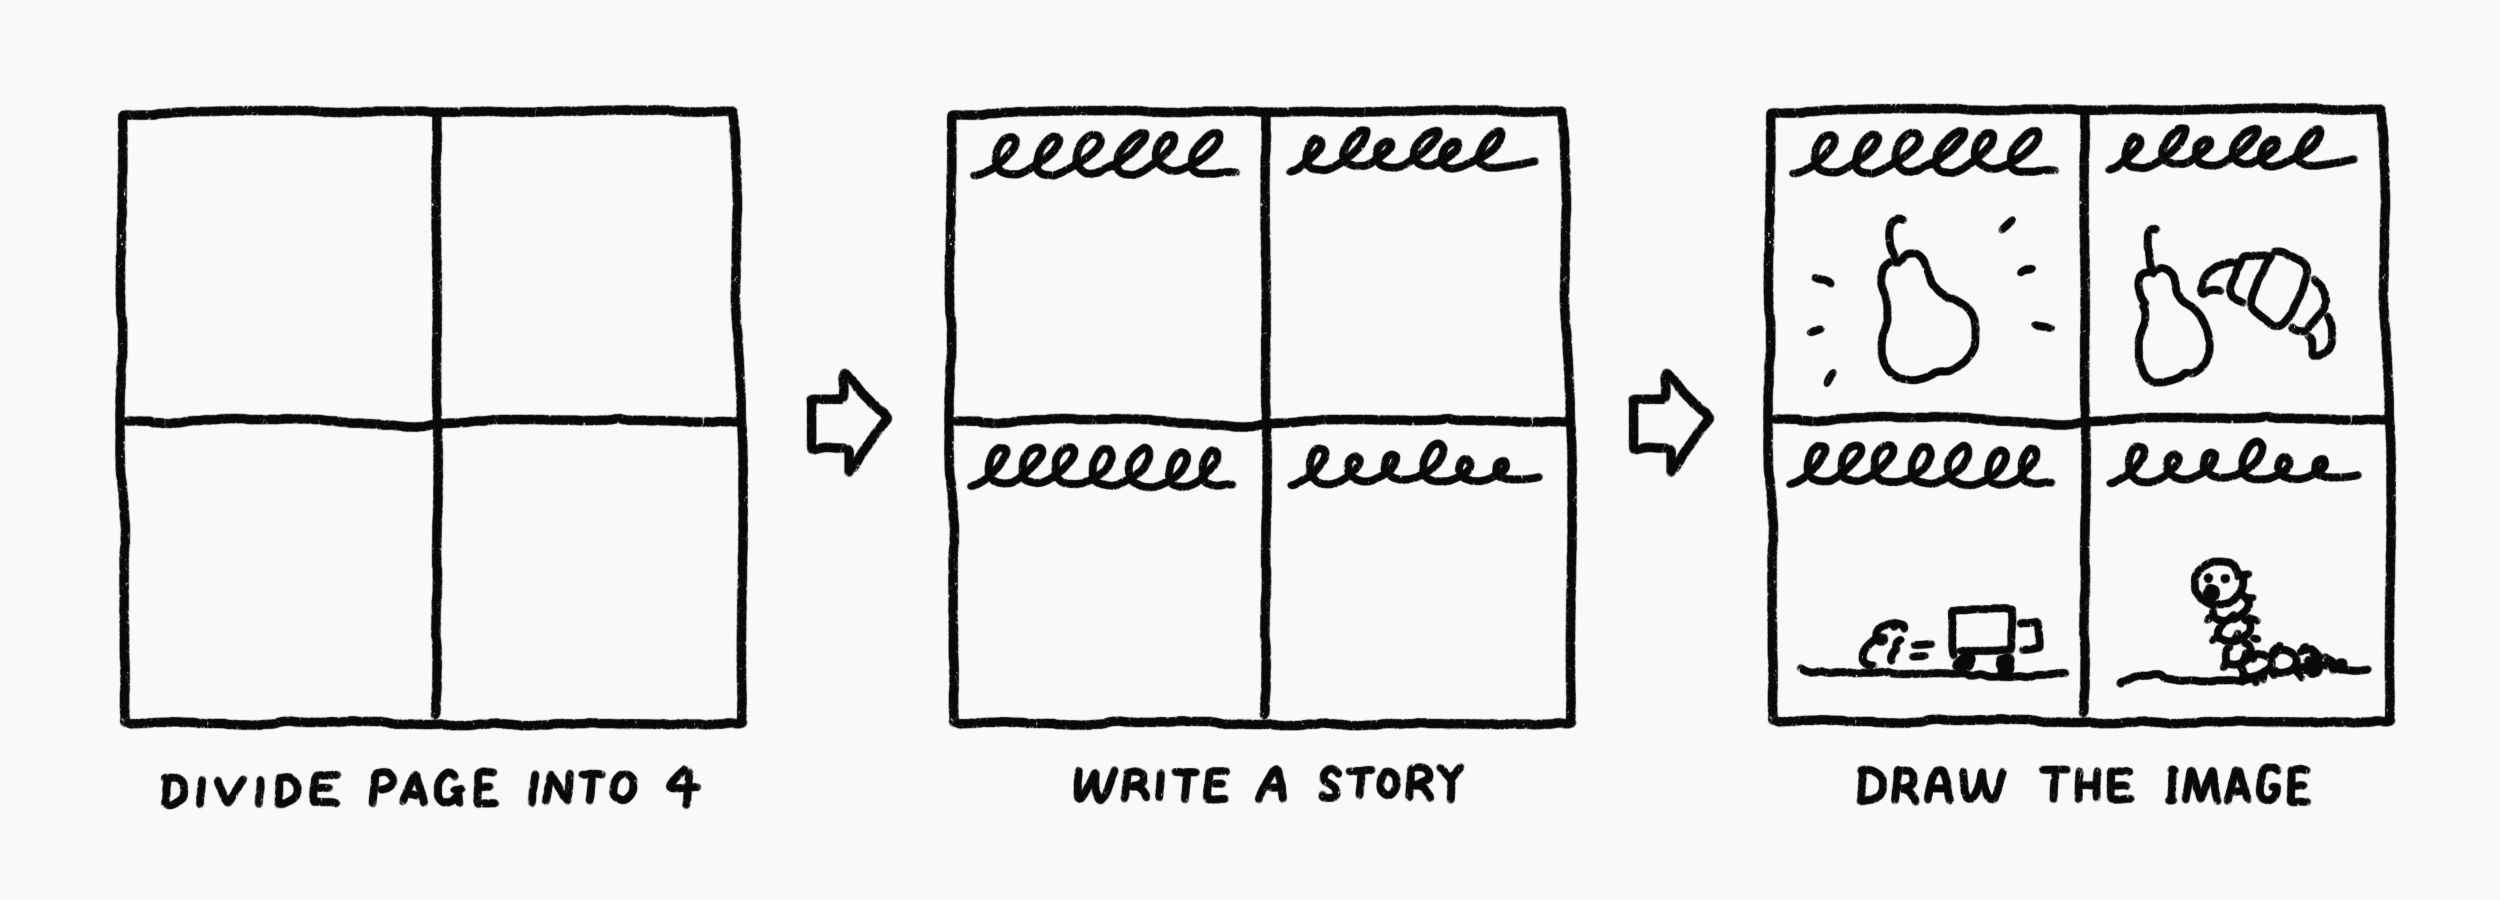 Divide page into four, then write the story, then draw the images based on the story